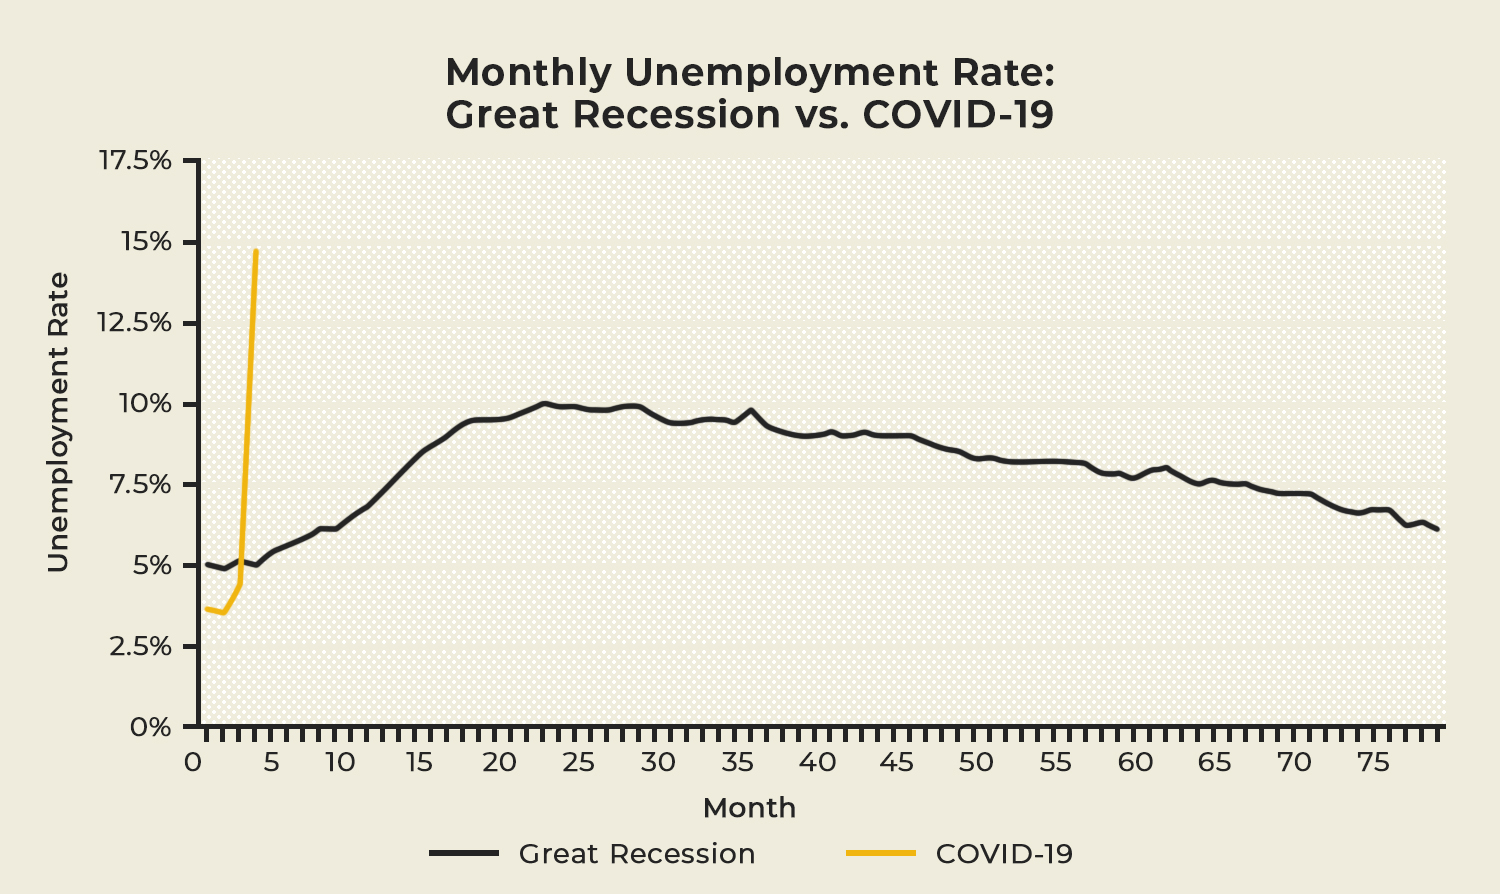 Colorado's Monthly Unemployment Rate, over months (comparing COVID to Great Recession)